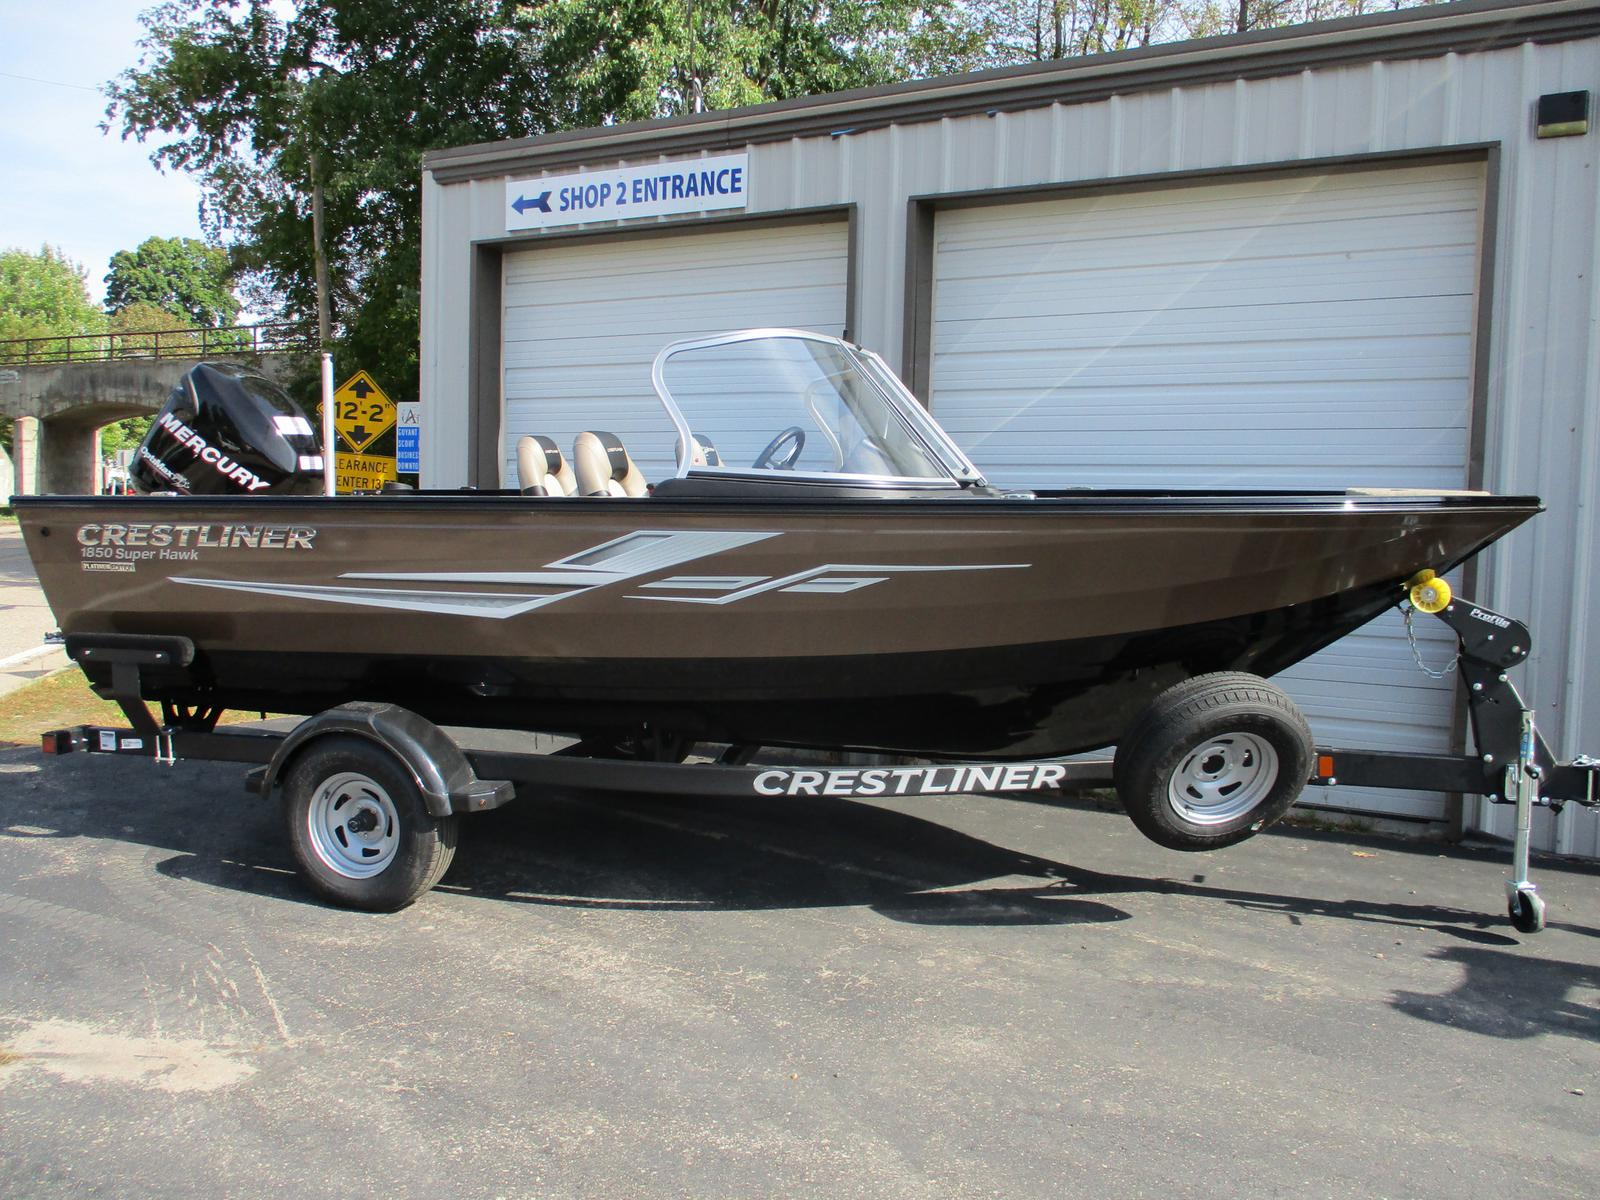 In-Stock New and Used Models For Sale in Amherst, WI Amherst